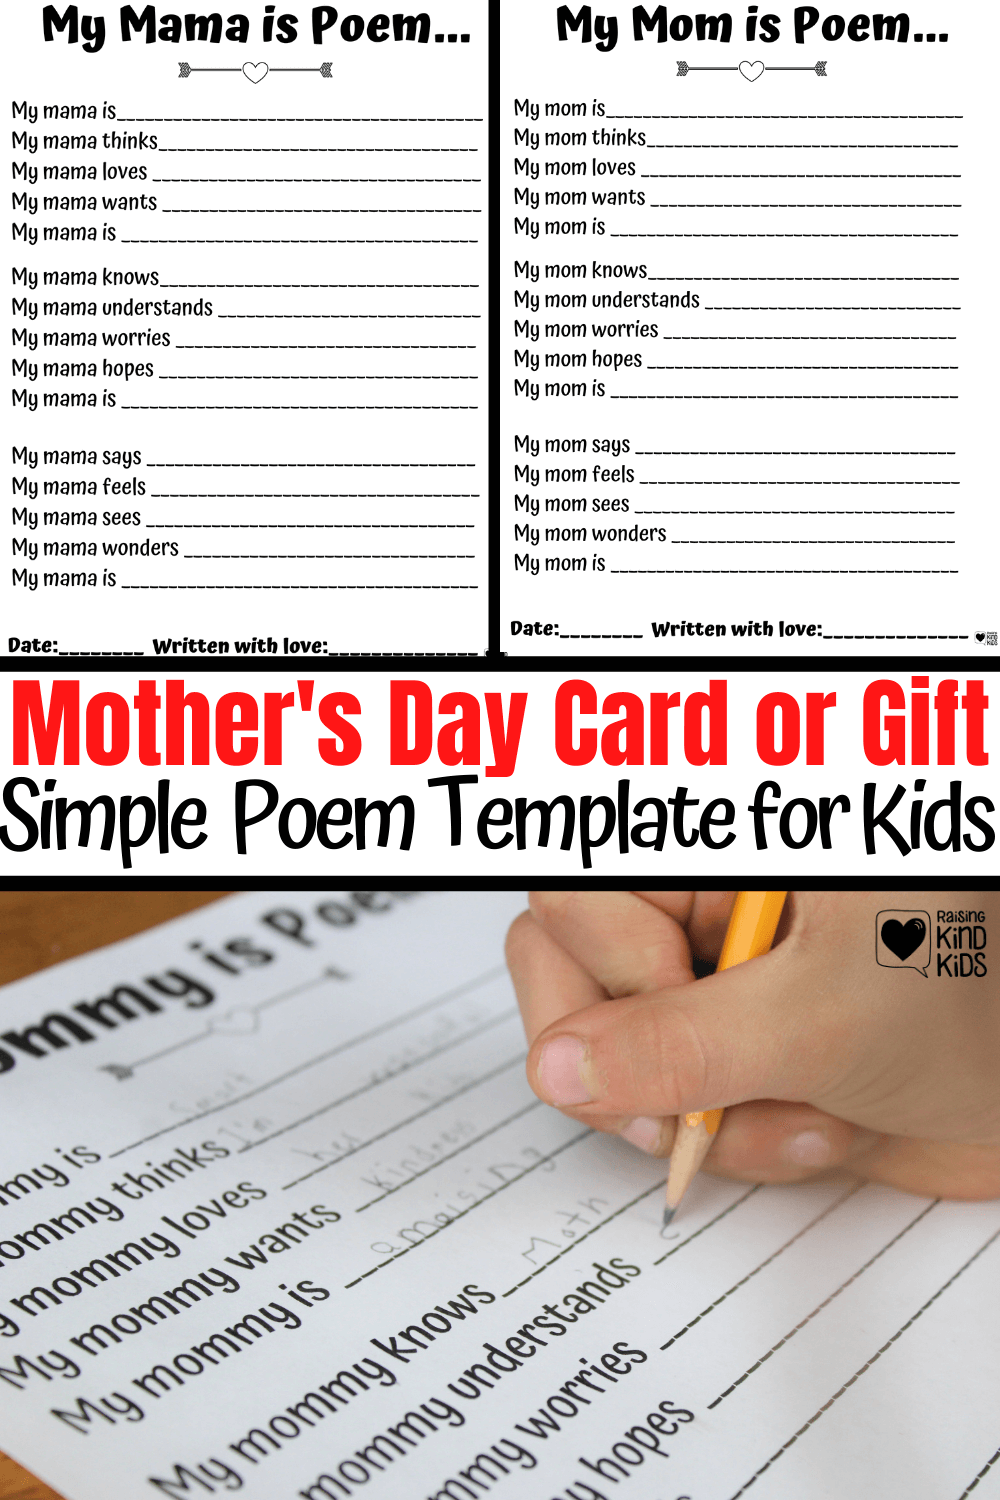 Mother's Day Gifts perfect for our kids to give to us. Print this free printable out and have your kids fill it out or dictate their answers. Can also be used as a perfect Mother's Day card. #mothersday #mothersdaycard #mothersdaygift #mday #Mothers